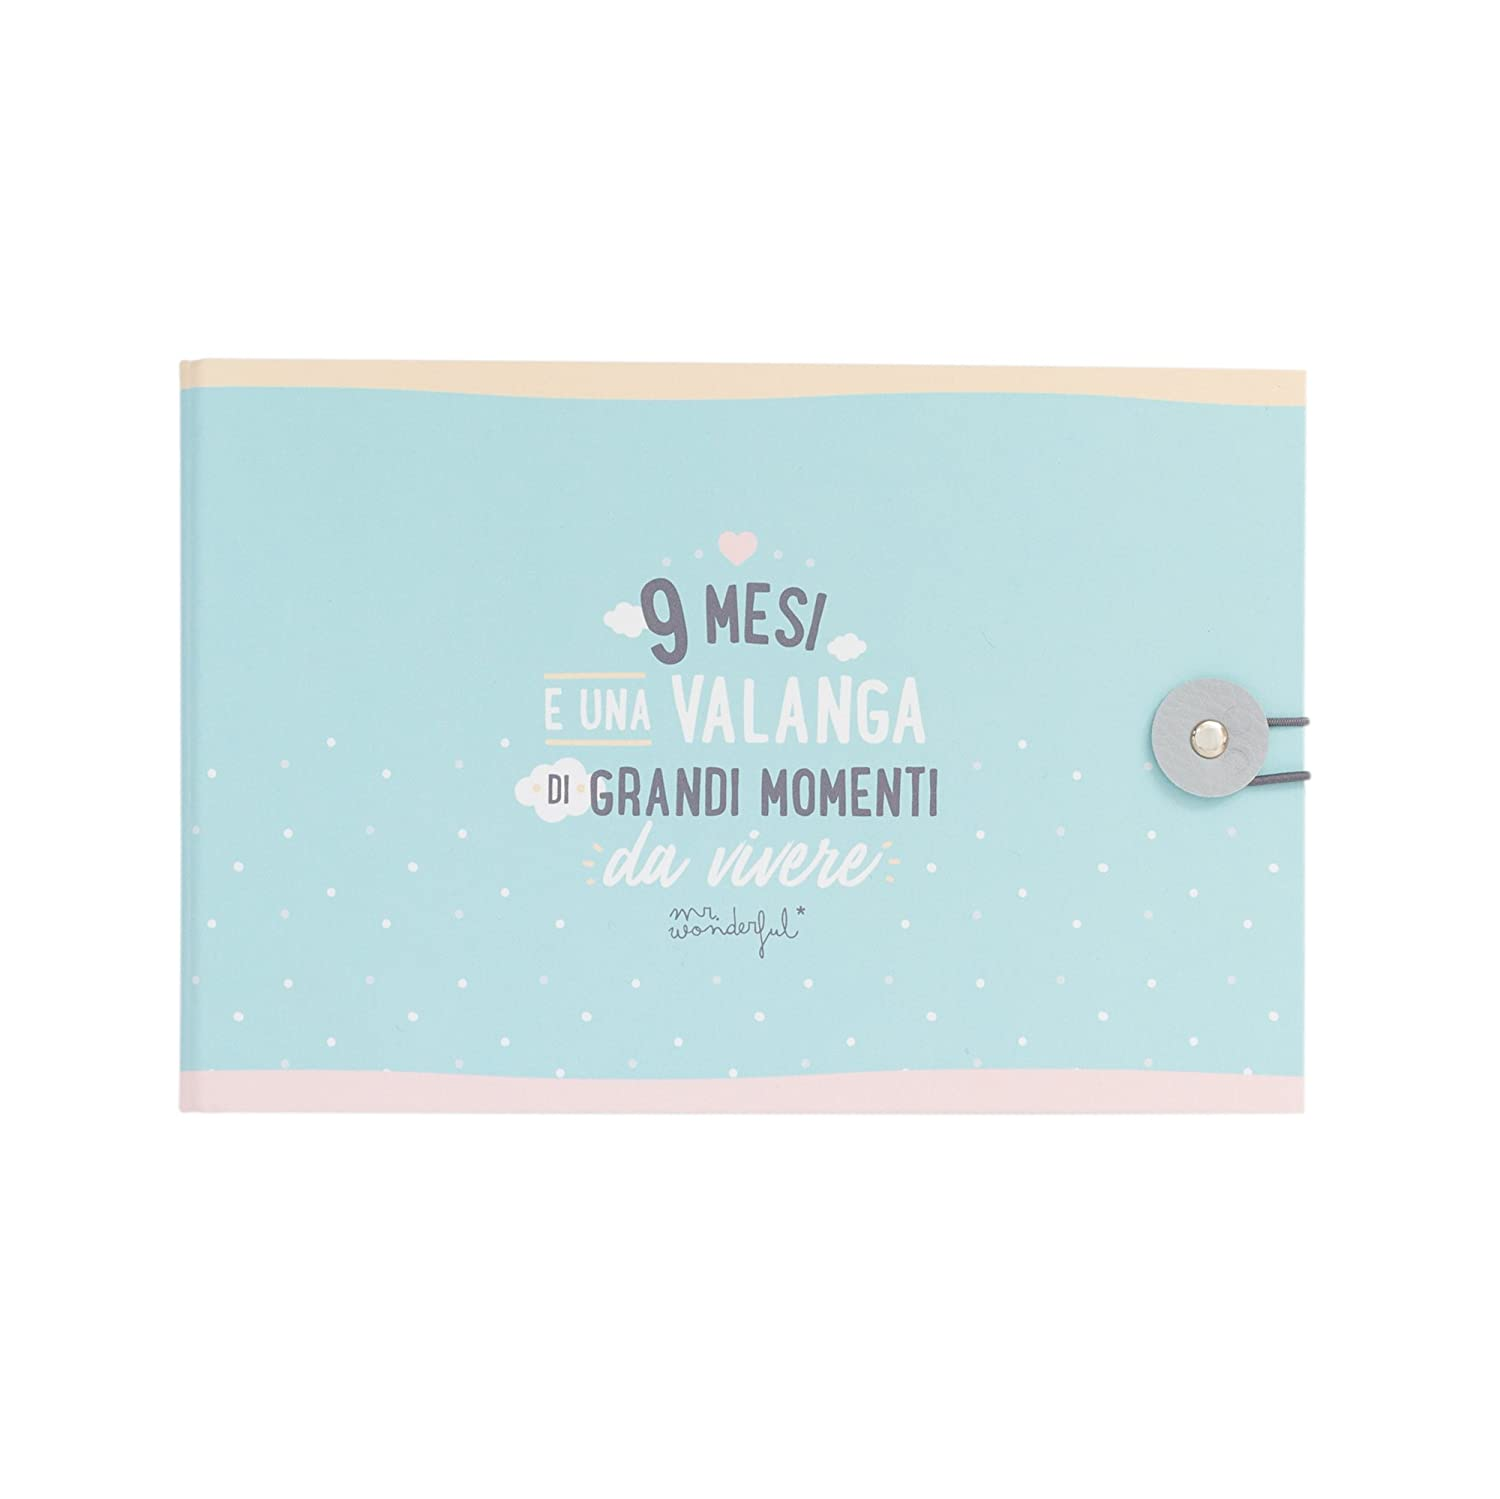 Mr. Wonderful Album-9 Mesi e Una Valanga di Grandi Momenti da Vivere,, 23 x 4 x 15 cm WOA09123IT